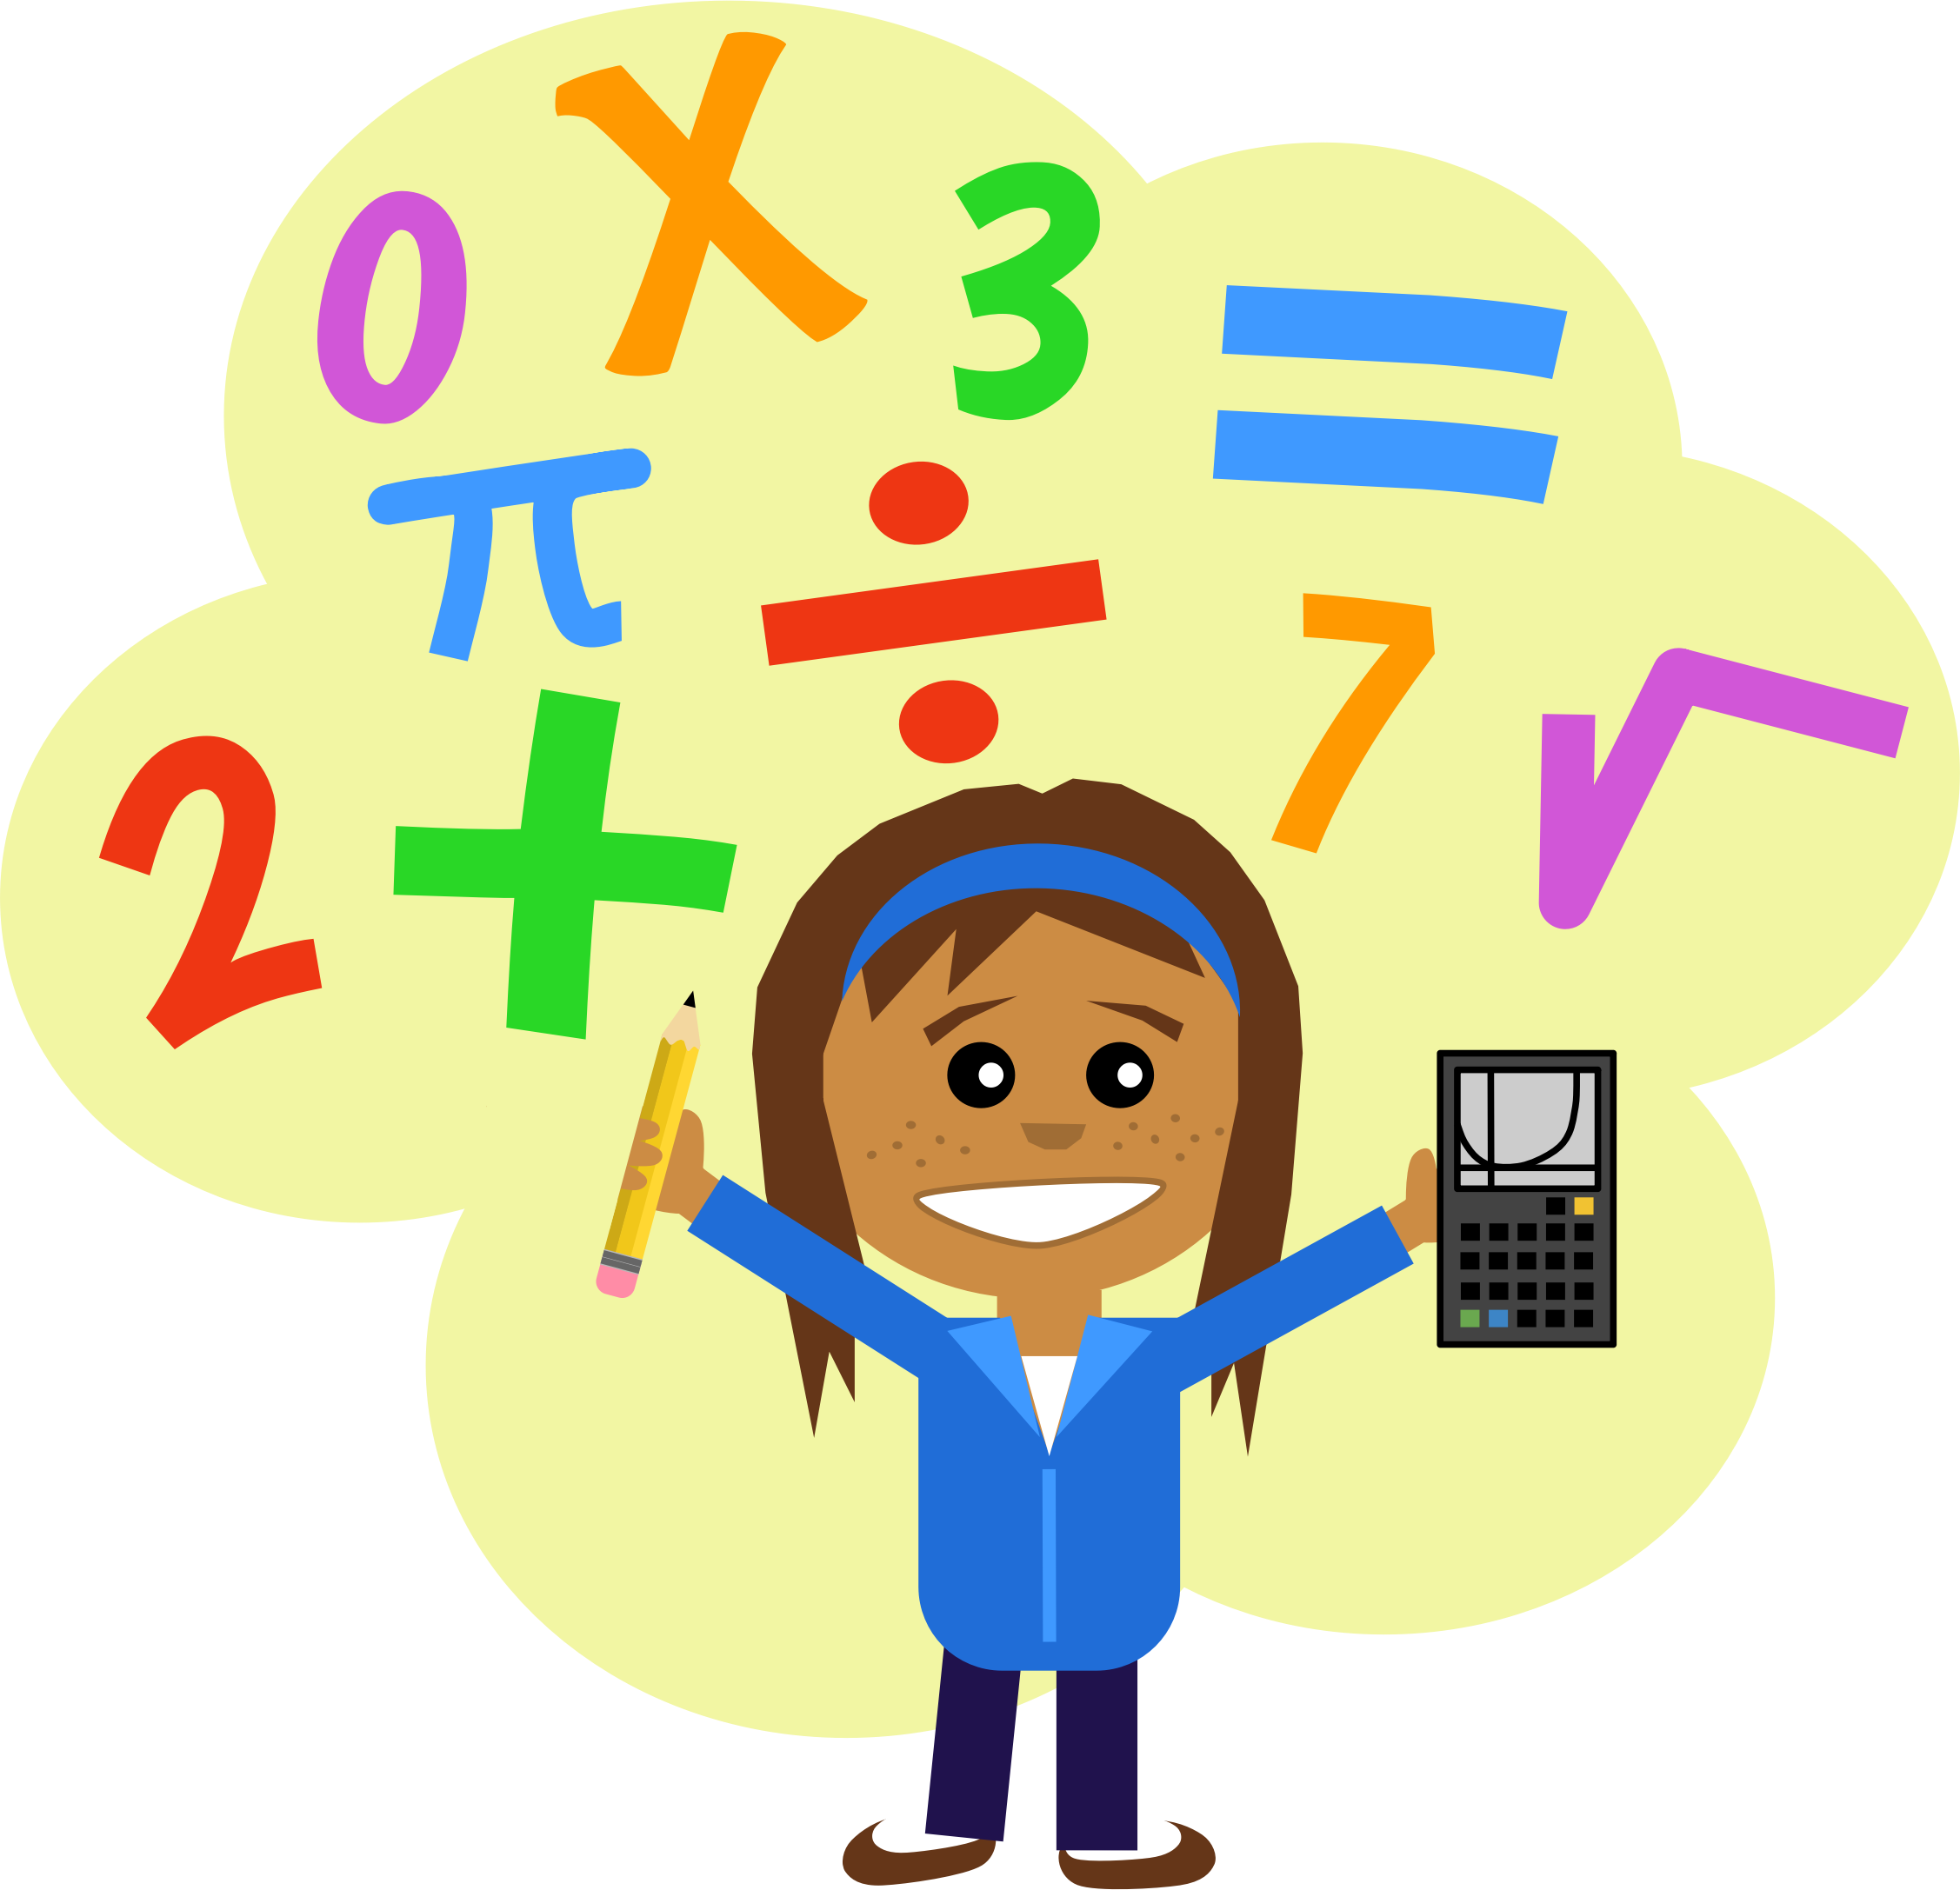 Pencil clipart calculator. Math girl by scout